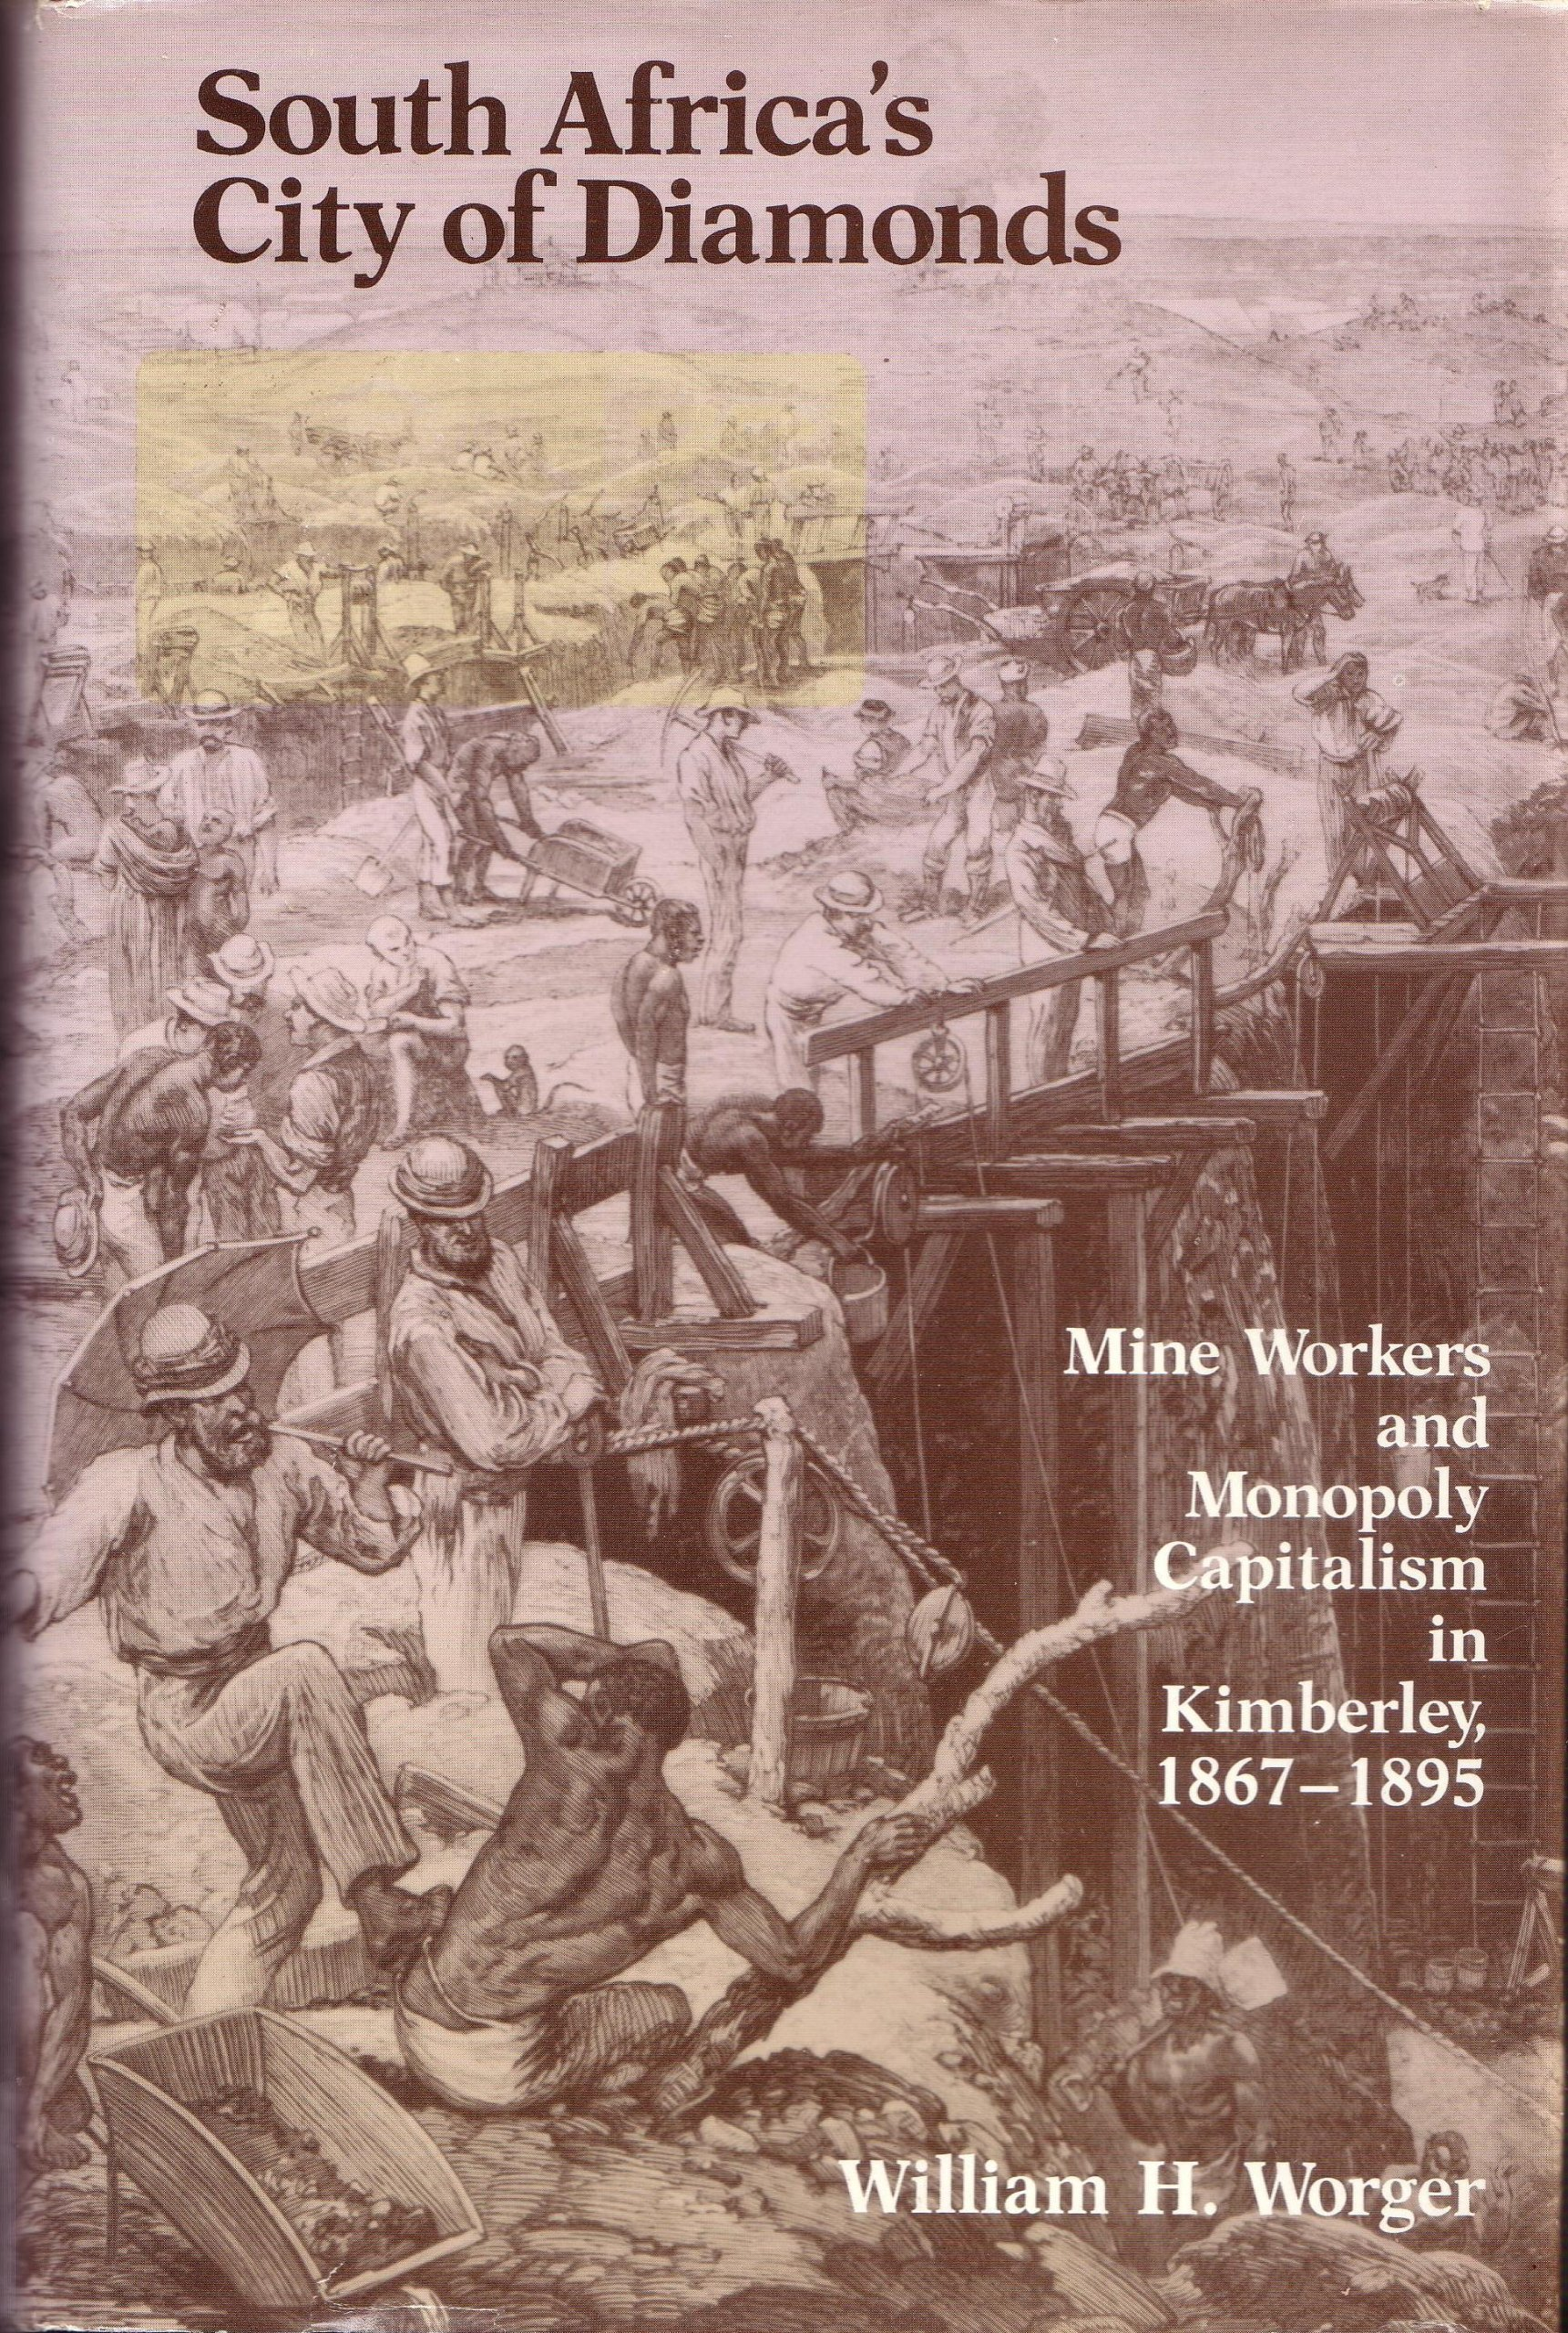 South Africas City of Diamonds: Mine Workers and Monopoly Capitalism in Kimberley, 1867-95 Historical Publications: Amazon.es: Worger, William H.: Libros en idiomas extranjeros